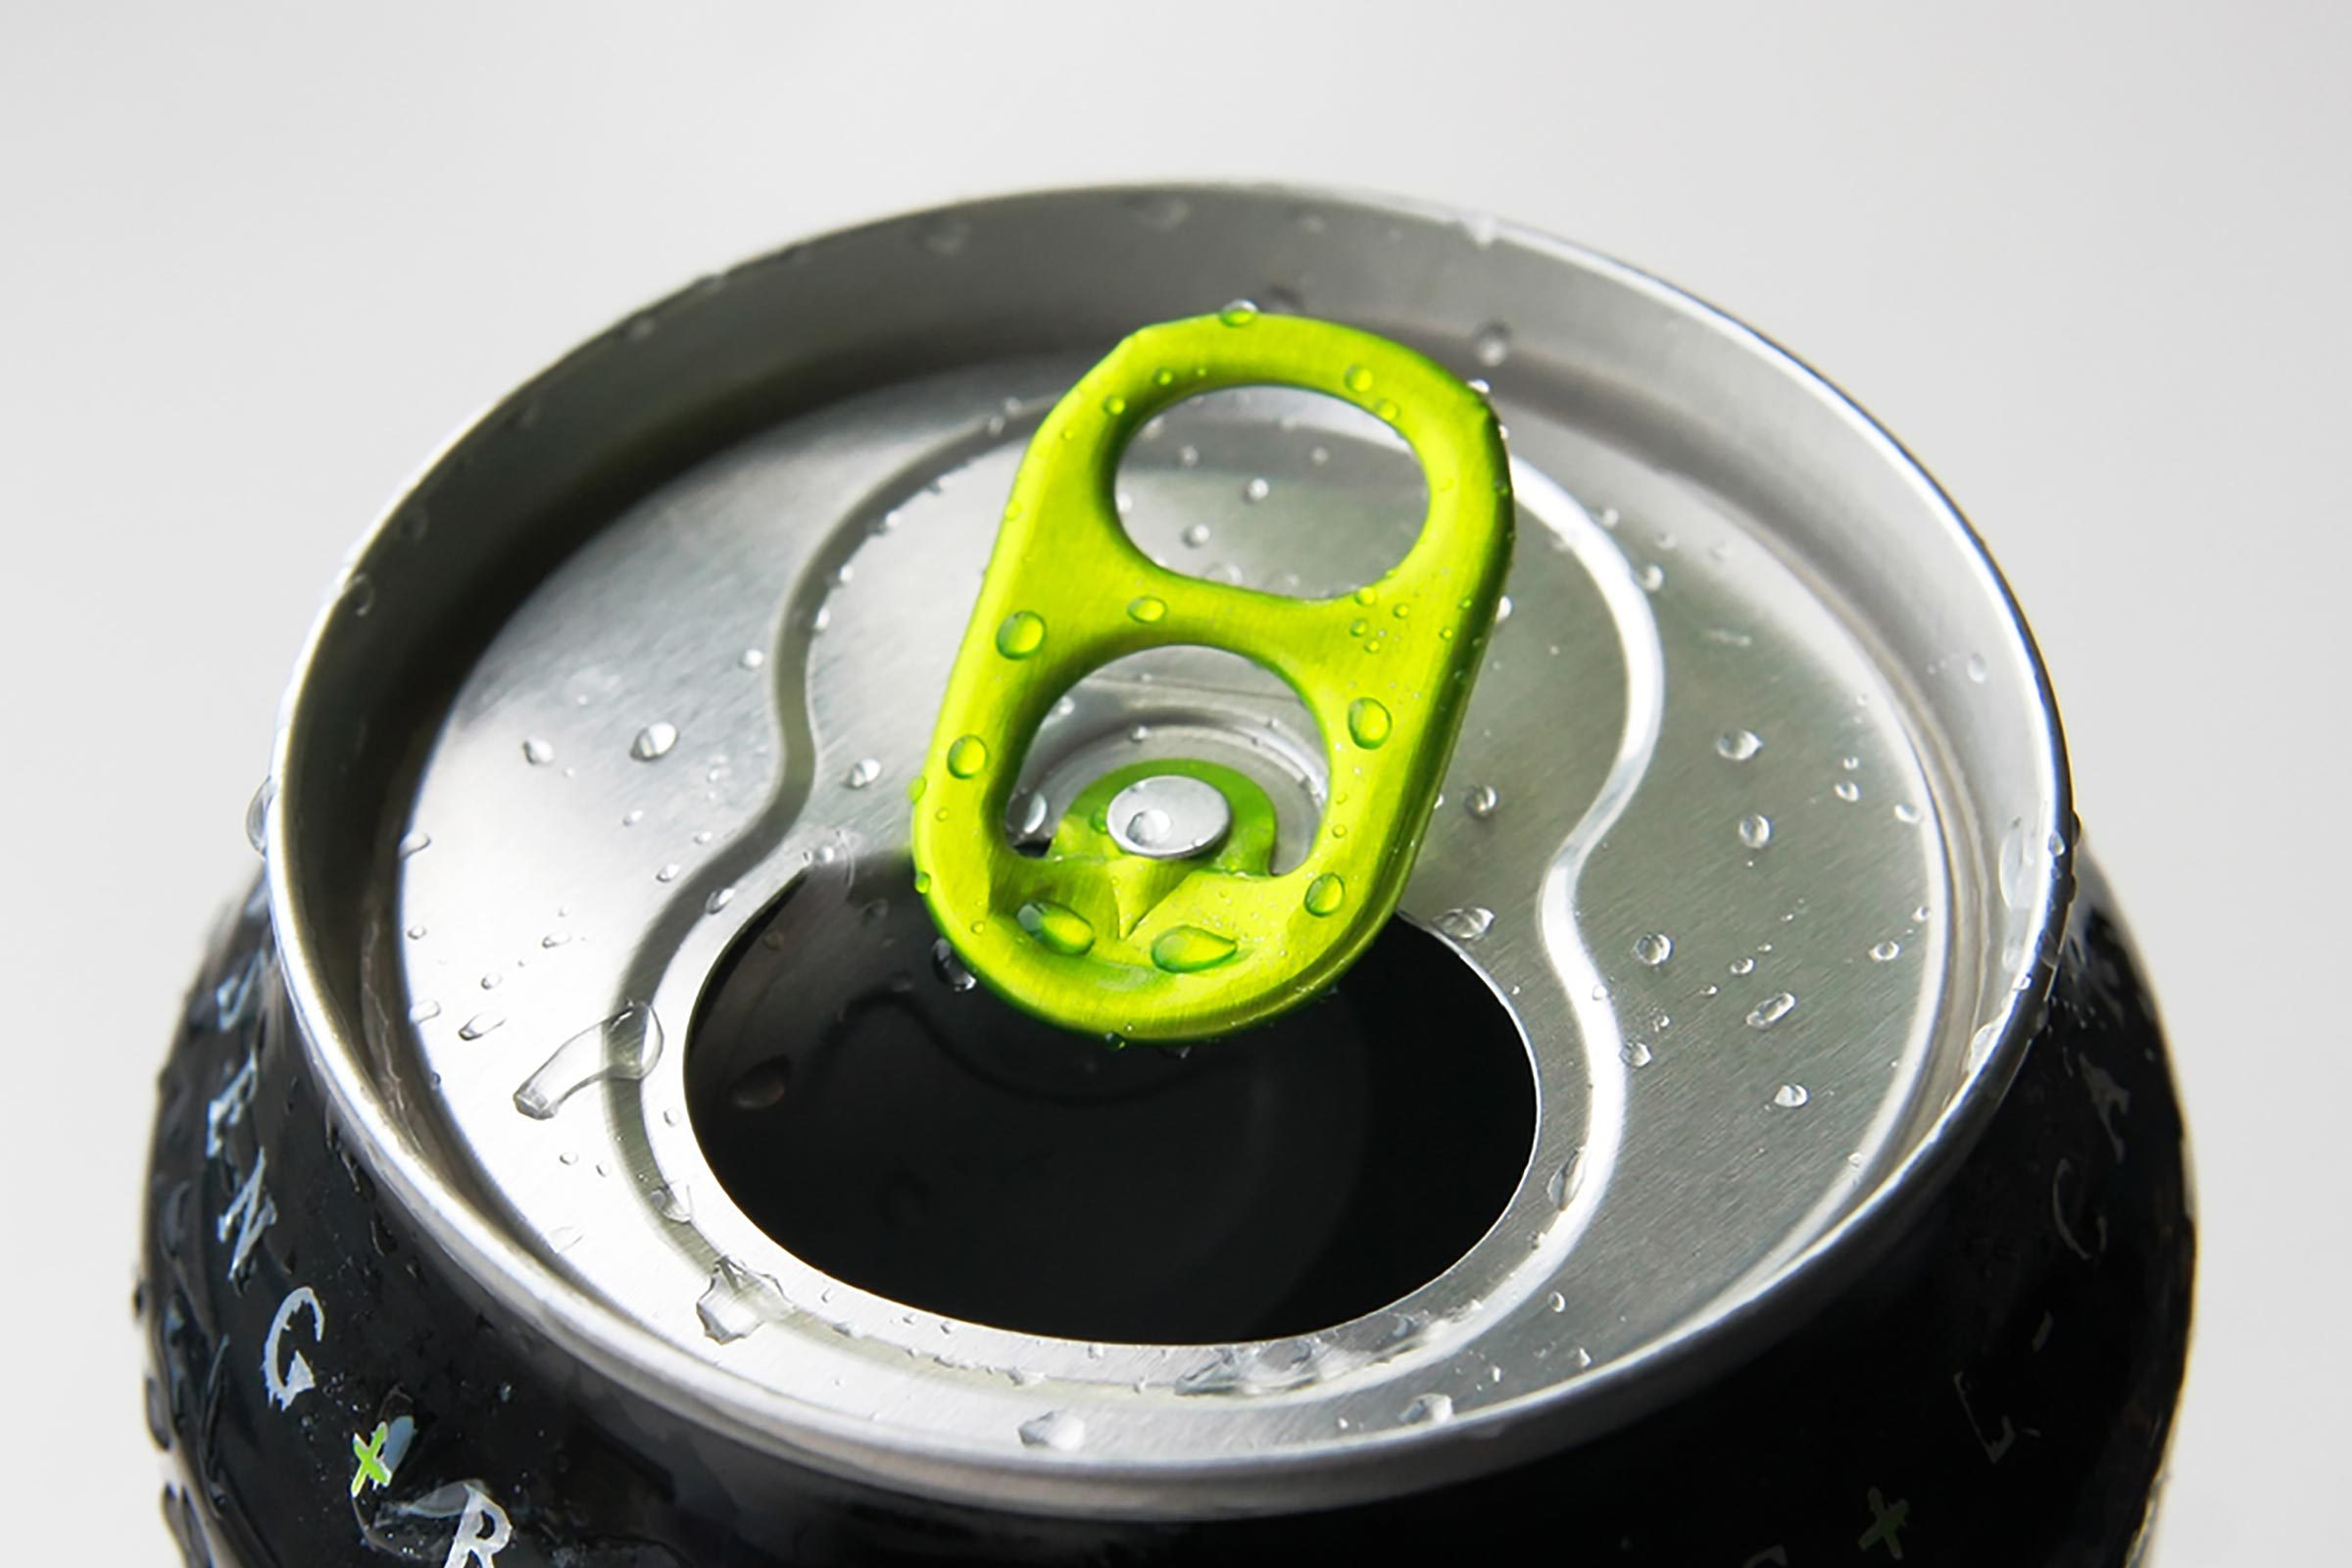 top of an energy drink can